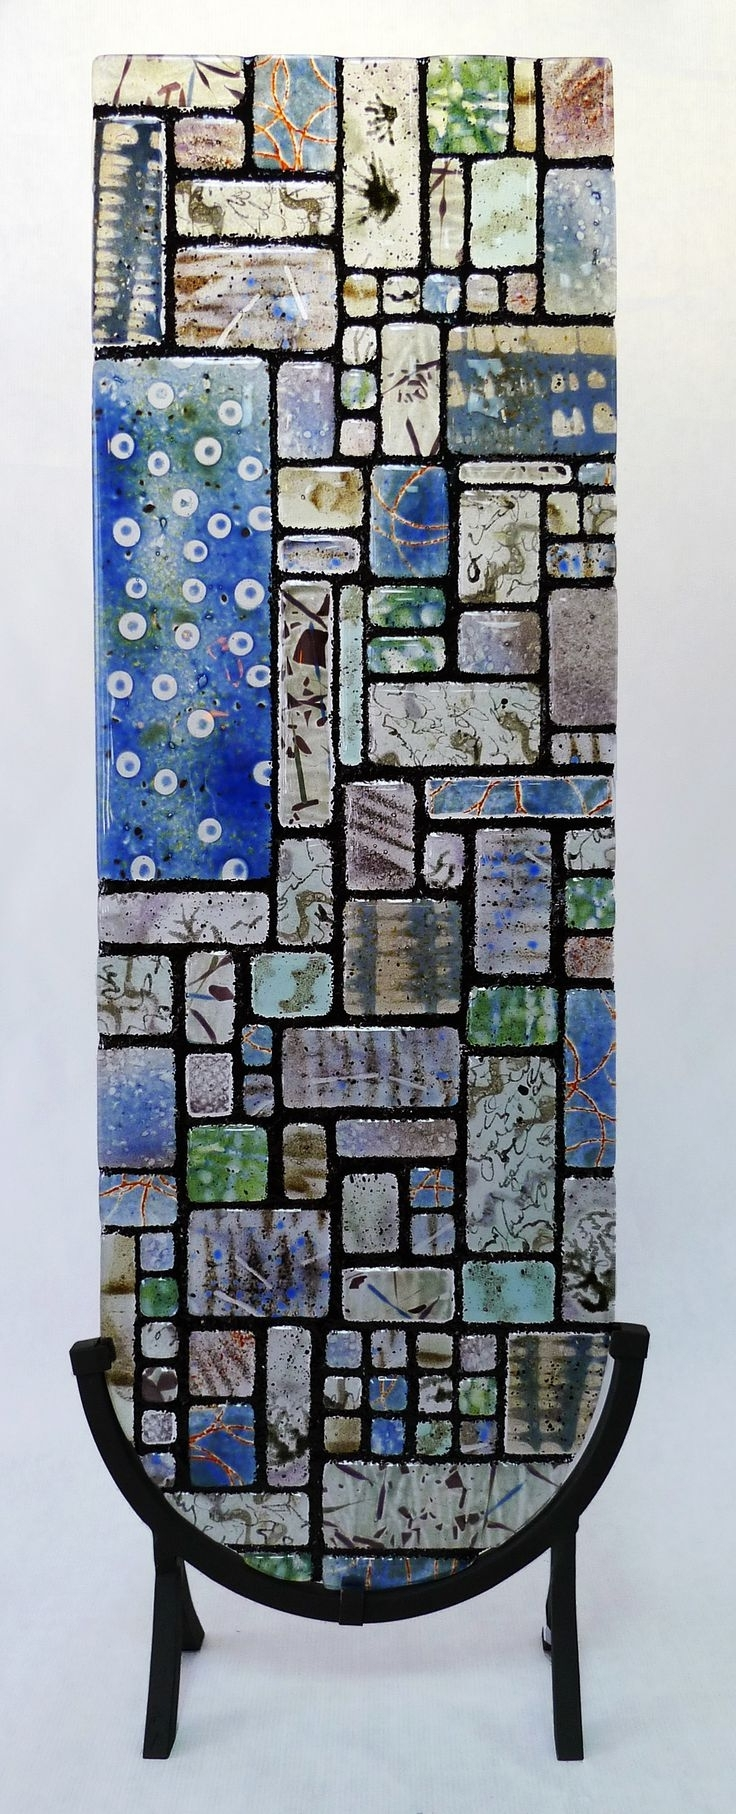 46 Best Eclectic Mosaic Inspirations Images On Pinterest (View 13 of 15)